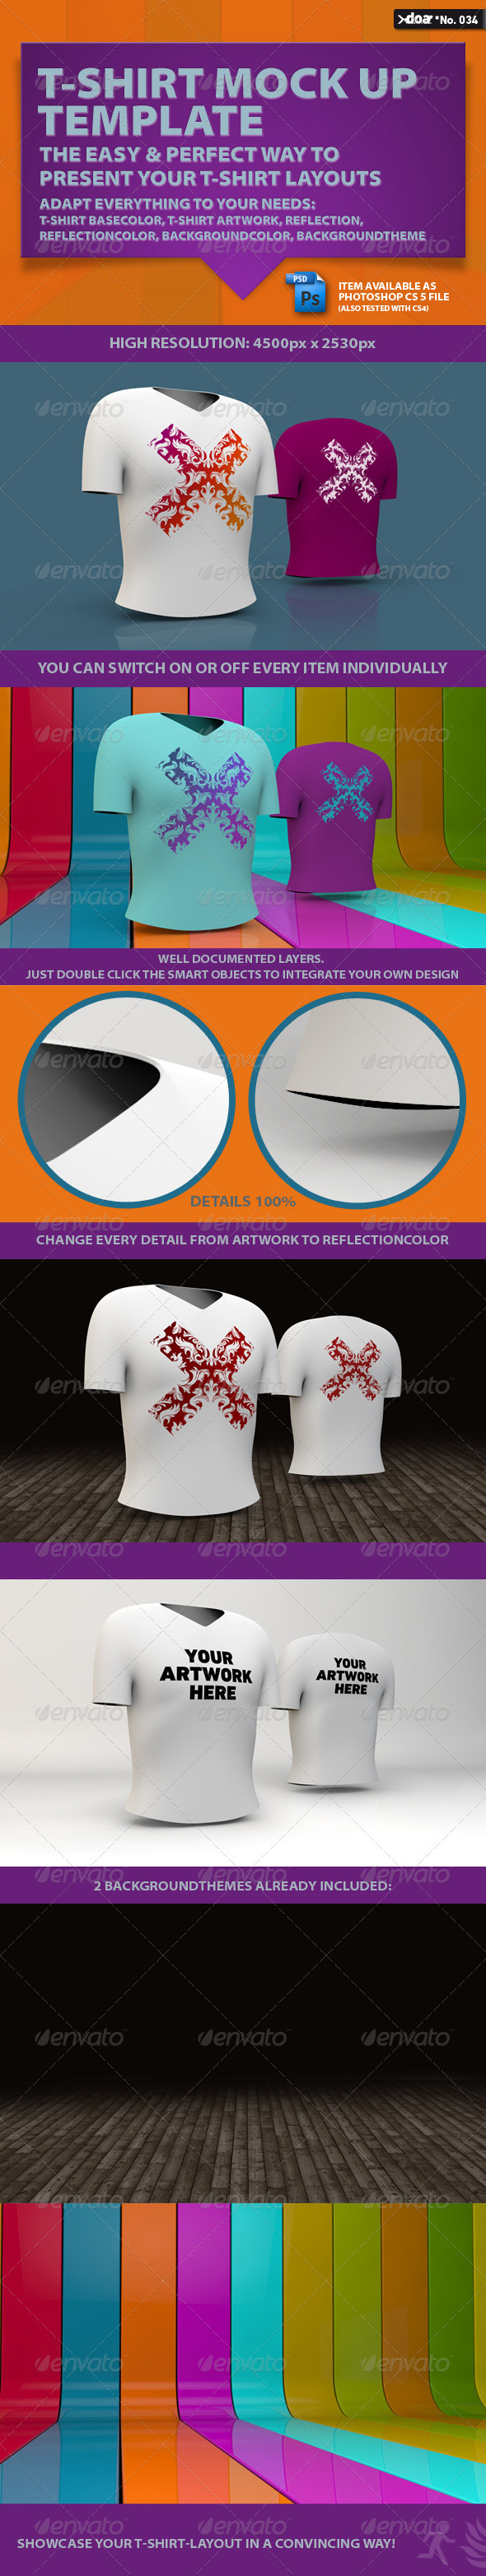 GraphicRiver T-Shirt Mock-up Template 521425